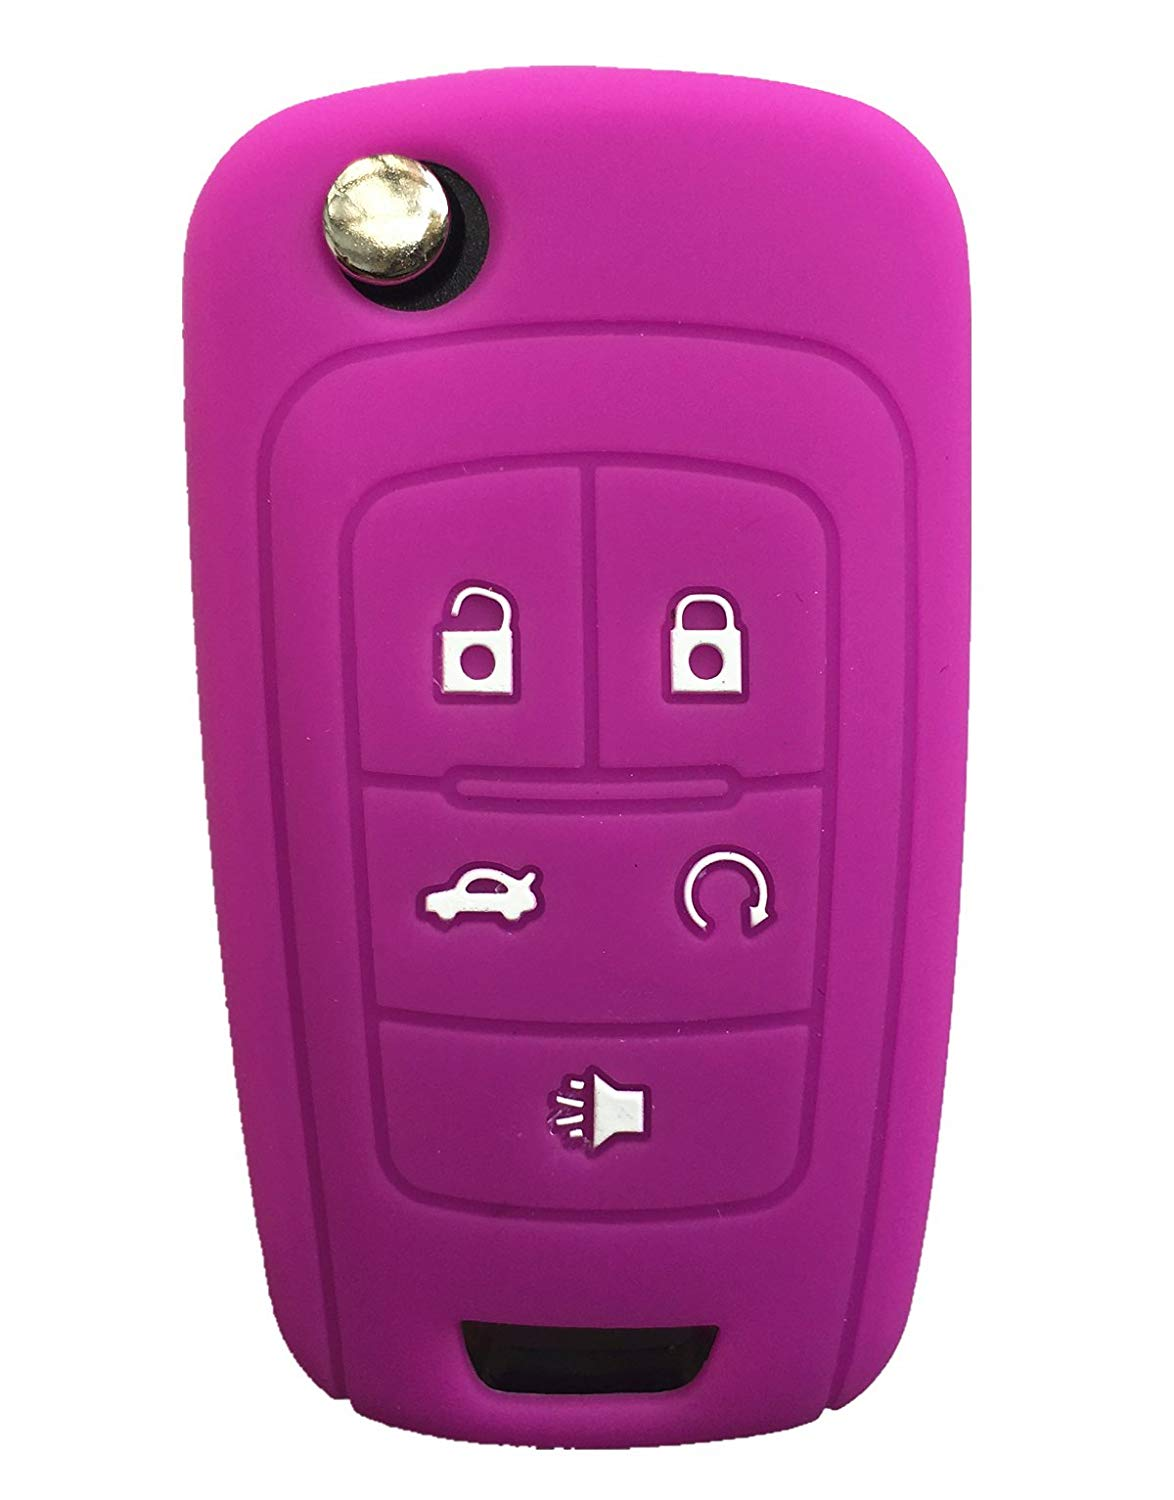 KAWIHEN Silicone Keyless Entry Case Cover Smart Remote Key Fob Cover Protector For Buick Allure Encore LaCrosse Regal Verano OHT01060512 KR55WK50073(Purple)